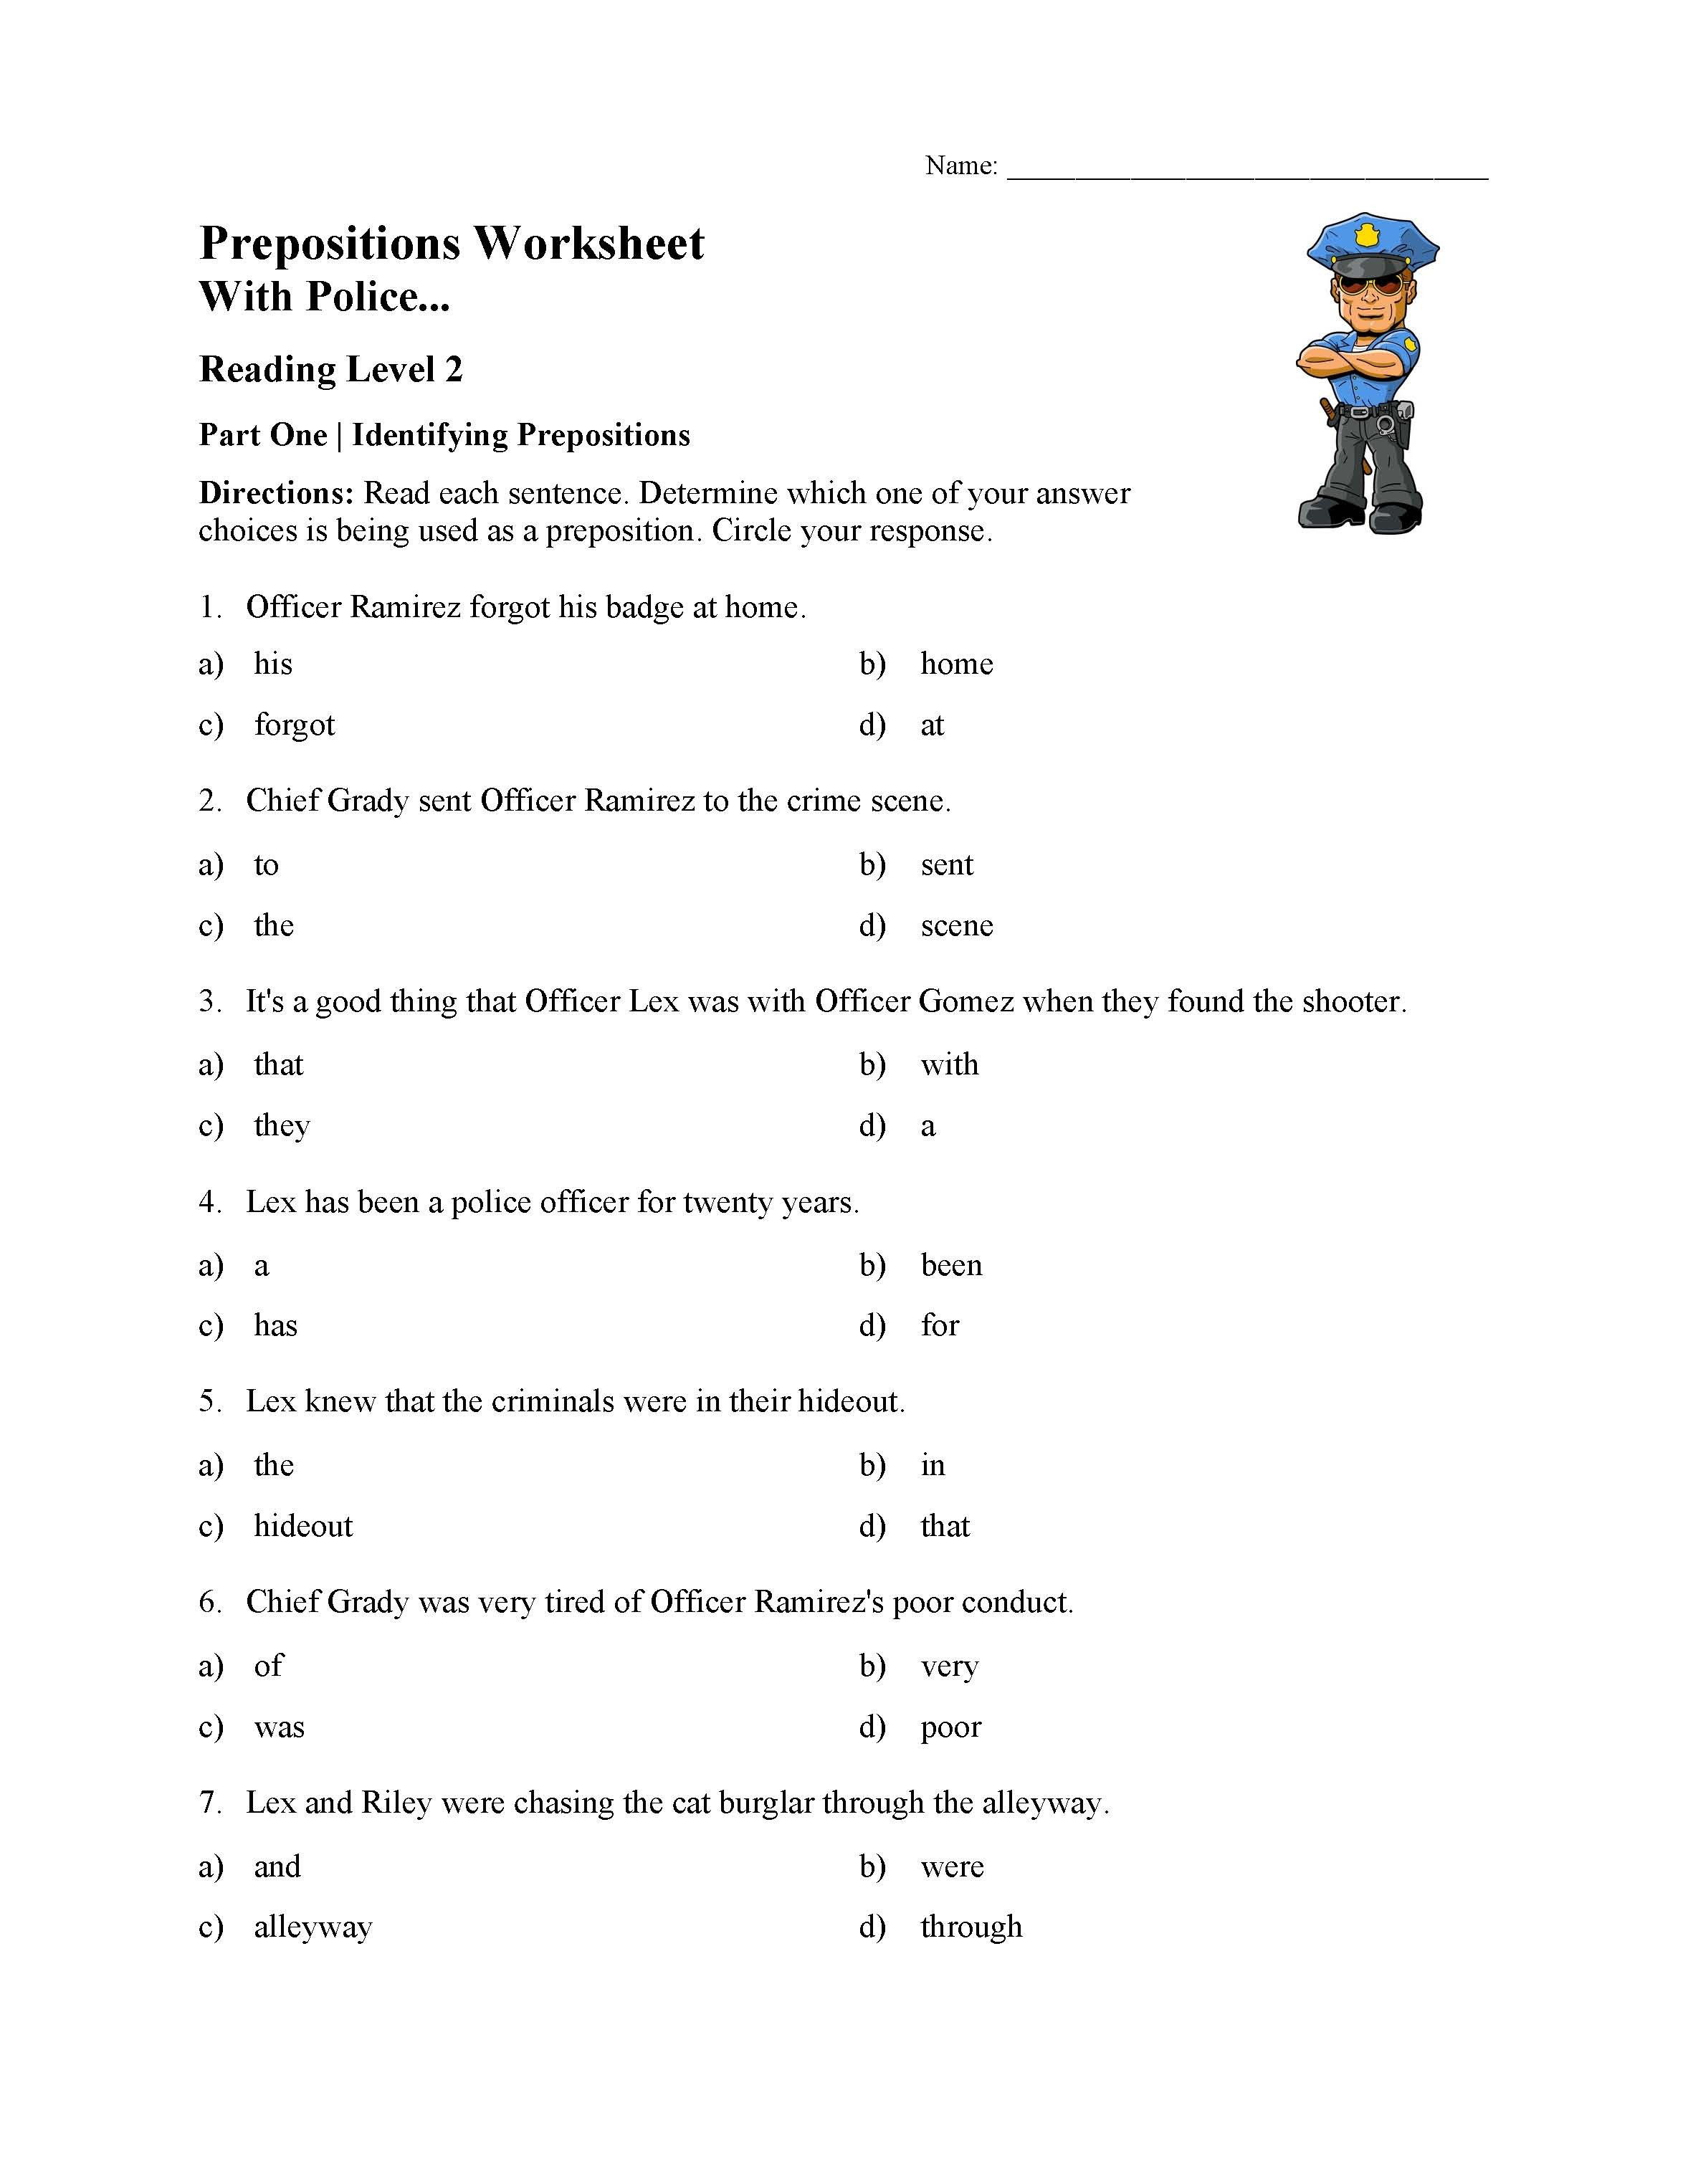 Preposition Worksheets for Grade 1 Preposition Worksheet 1 Reading Level 2